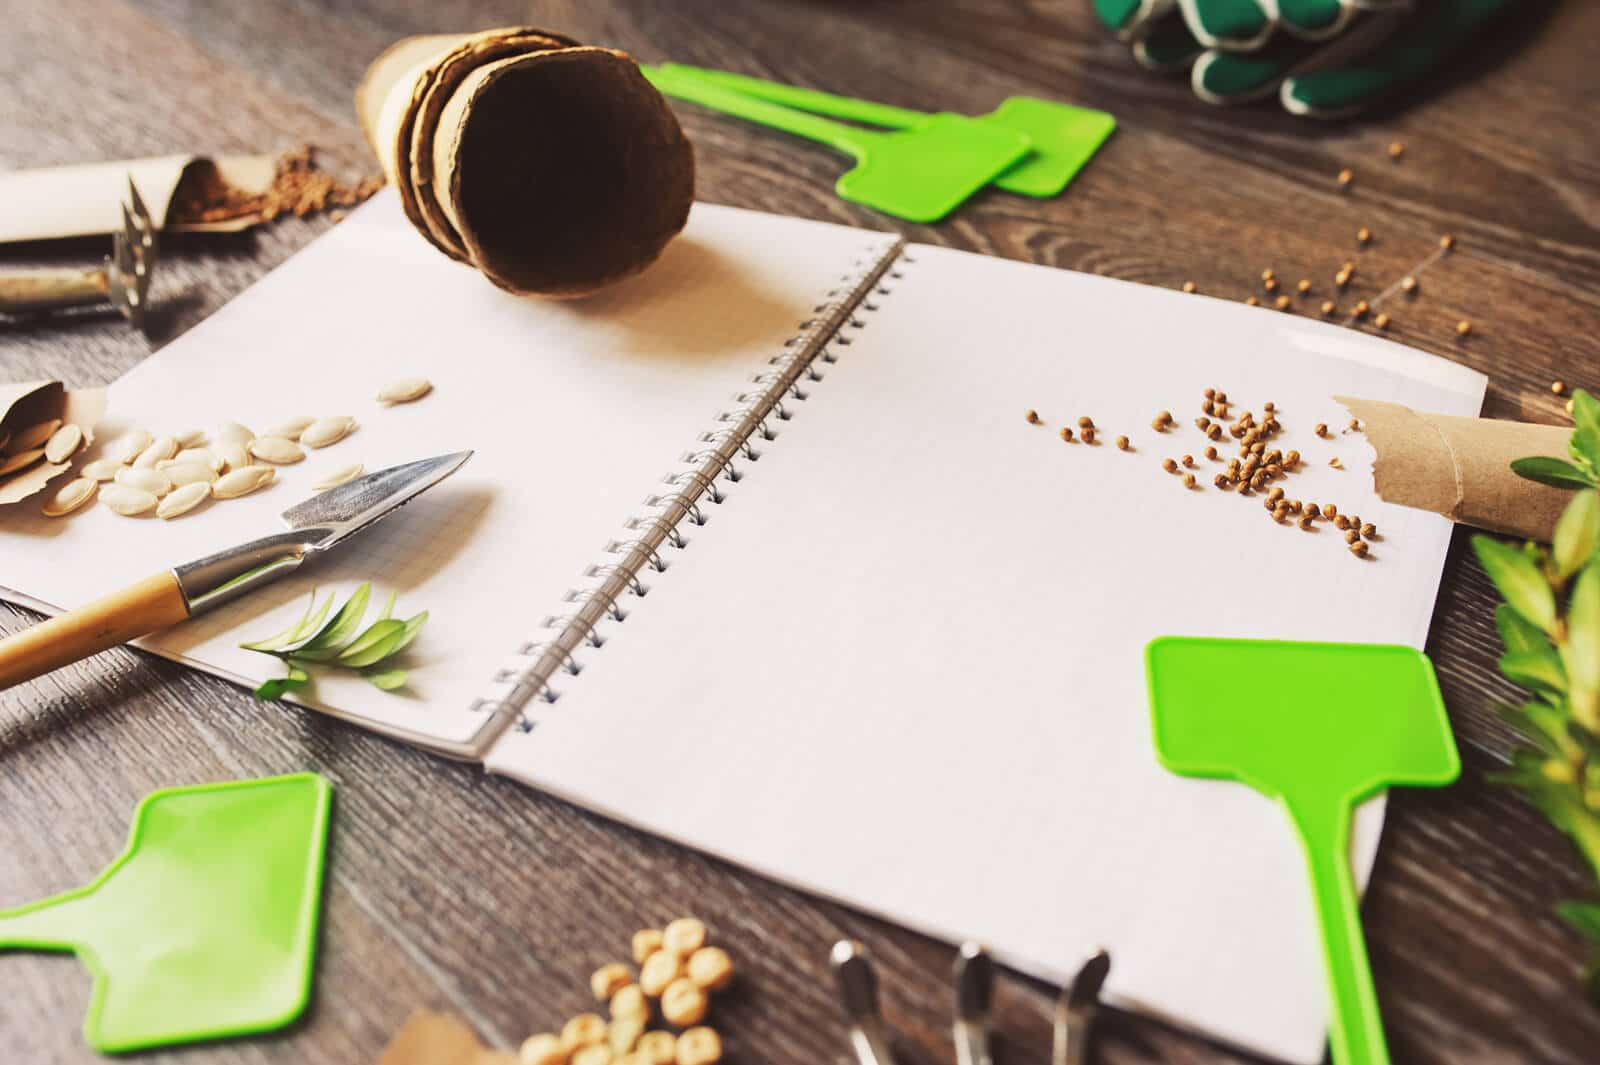 garden planning notebook and seeds on a table